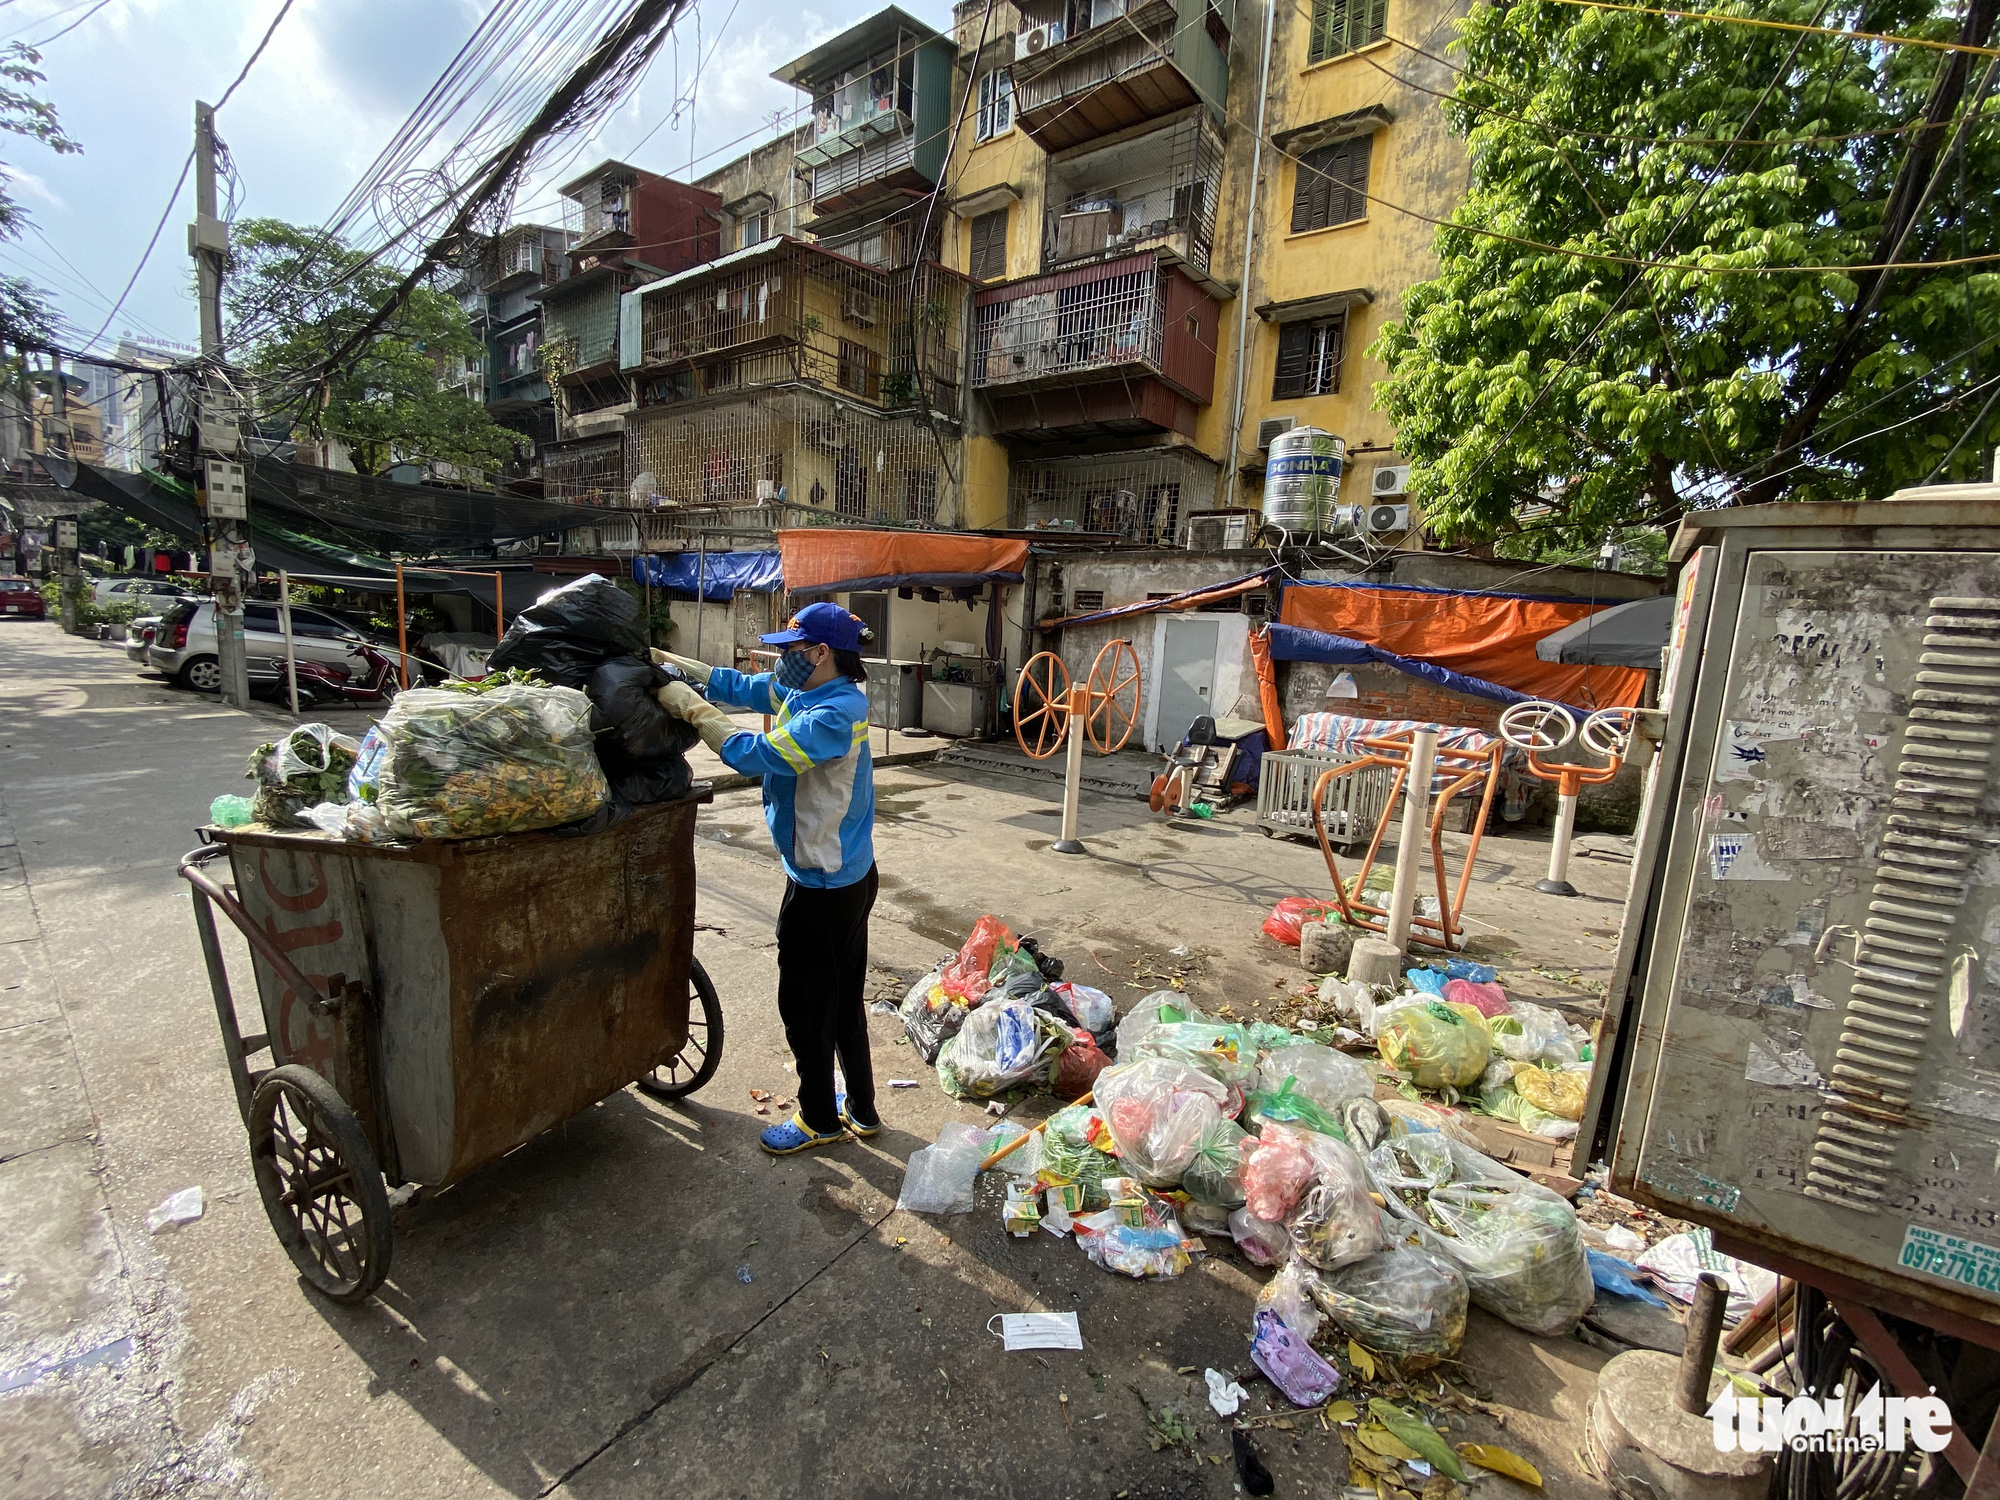 Unpaid sanitation workers take out loans, collect scrap to survive in Hanoi